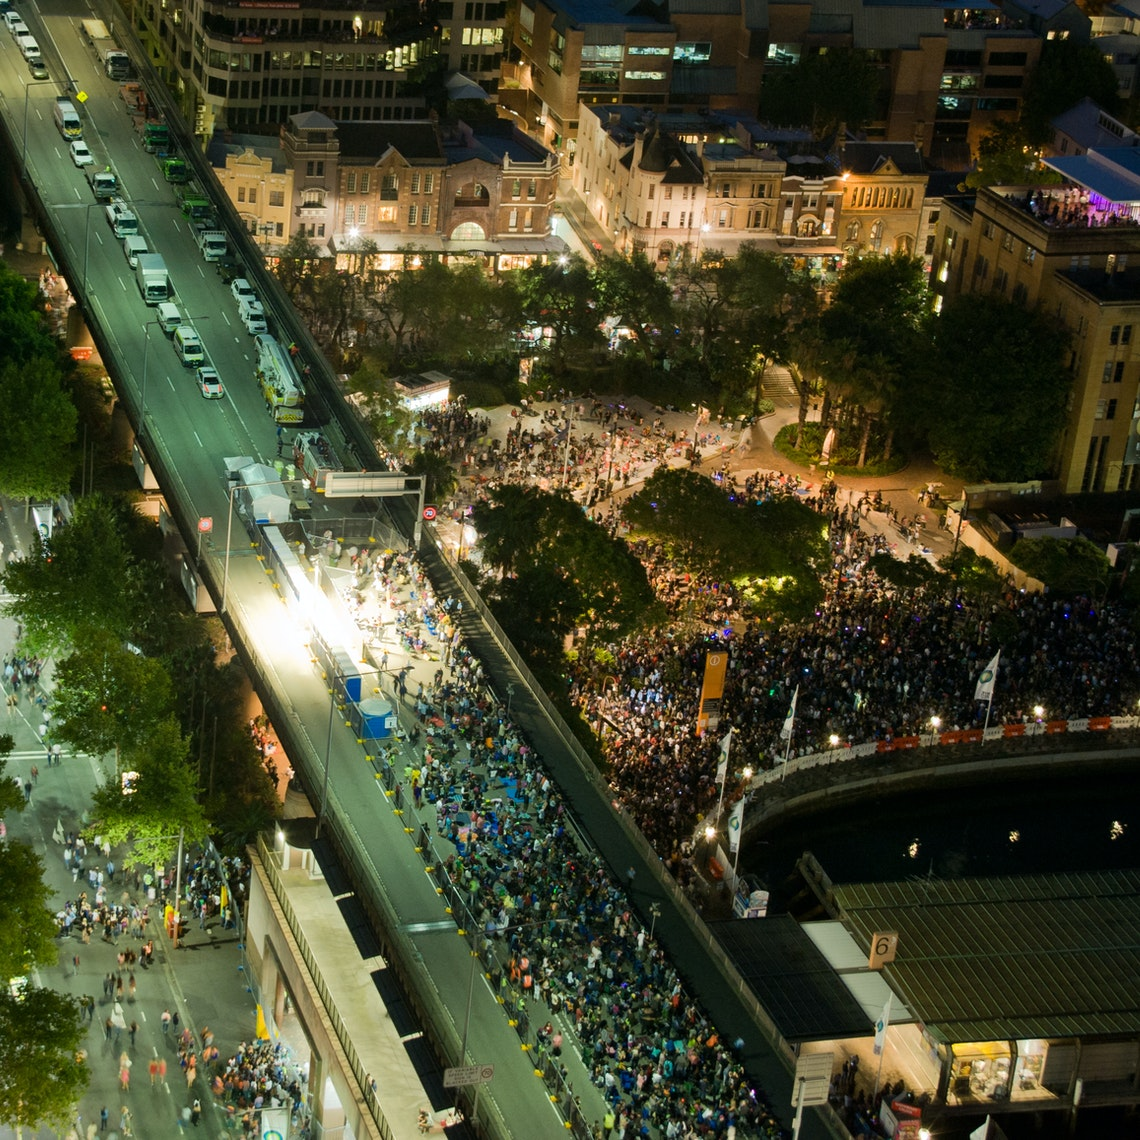 Aerial view of New Year's Eve spectators on the closed Cahill Expressway and spectators packed into the Circular Quay foreshore.